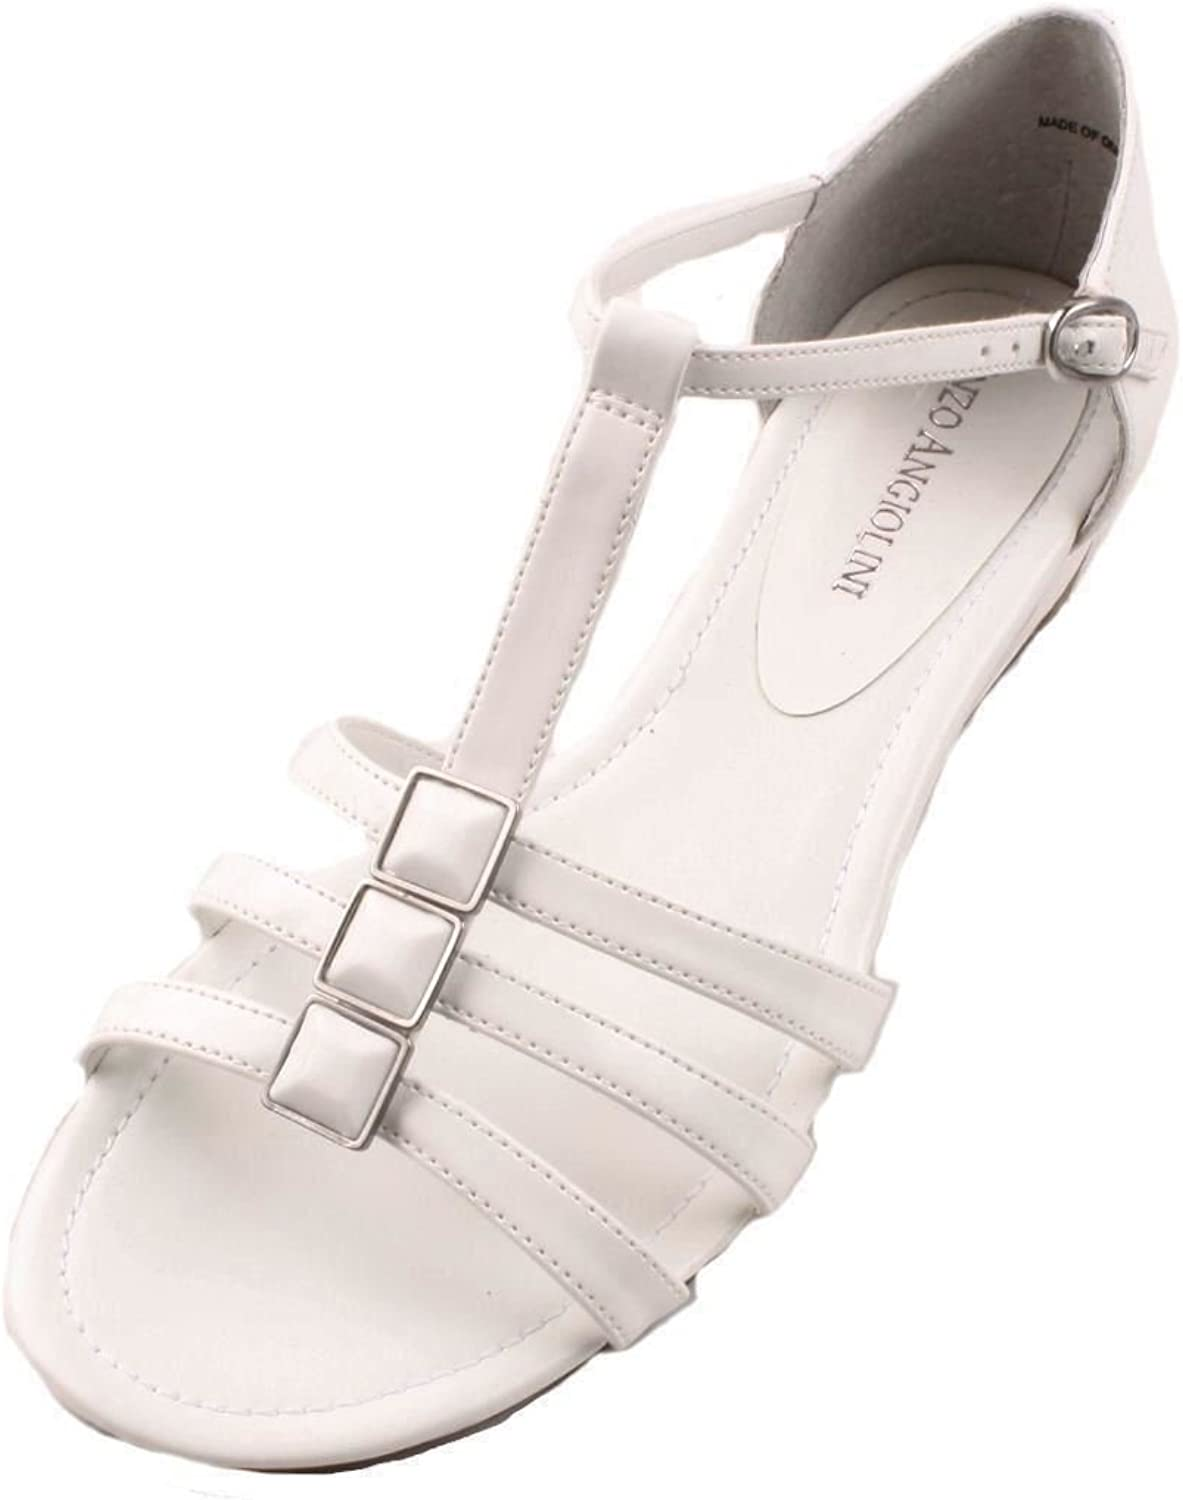 Enzo Angiolini Nyler Women's Sandals shoes